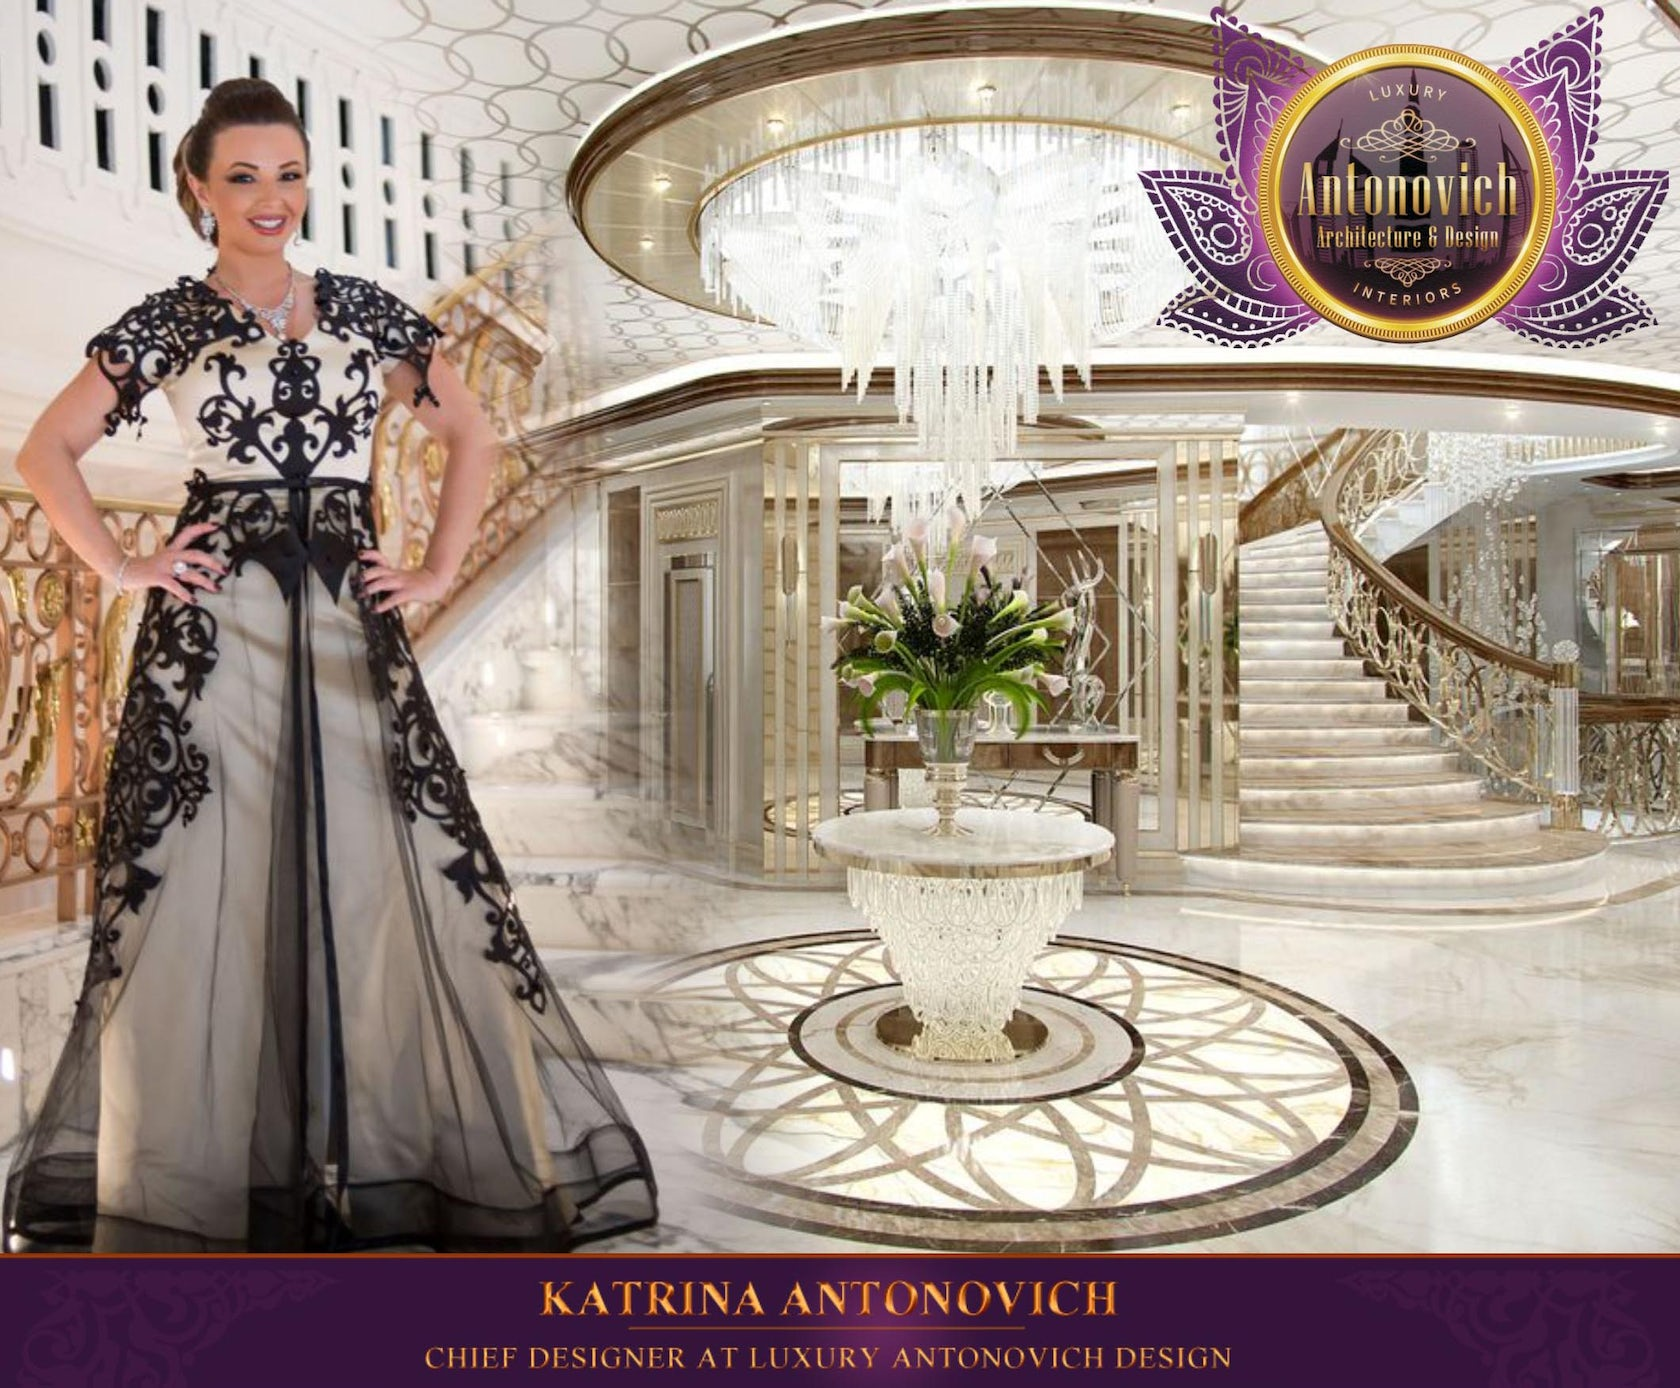 Beautiful dressing room design in dubai by luxury antonovich design - Beautiful Dressing Room Design In Dubai By Luxury Antonovich Design 12